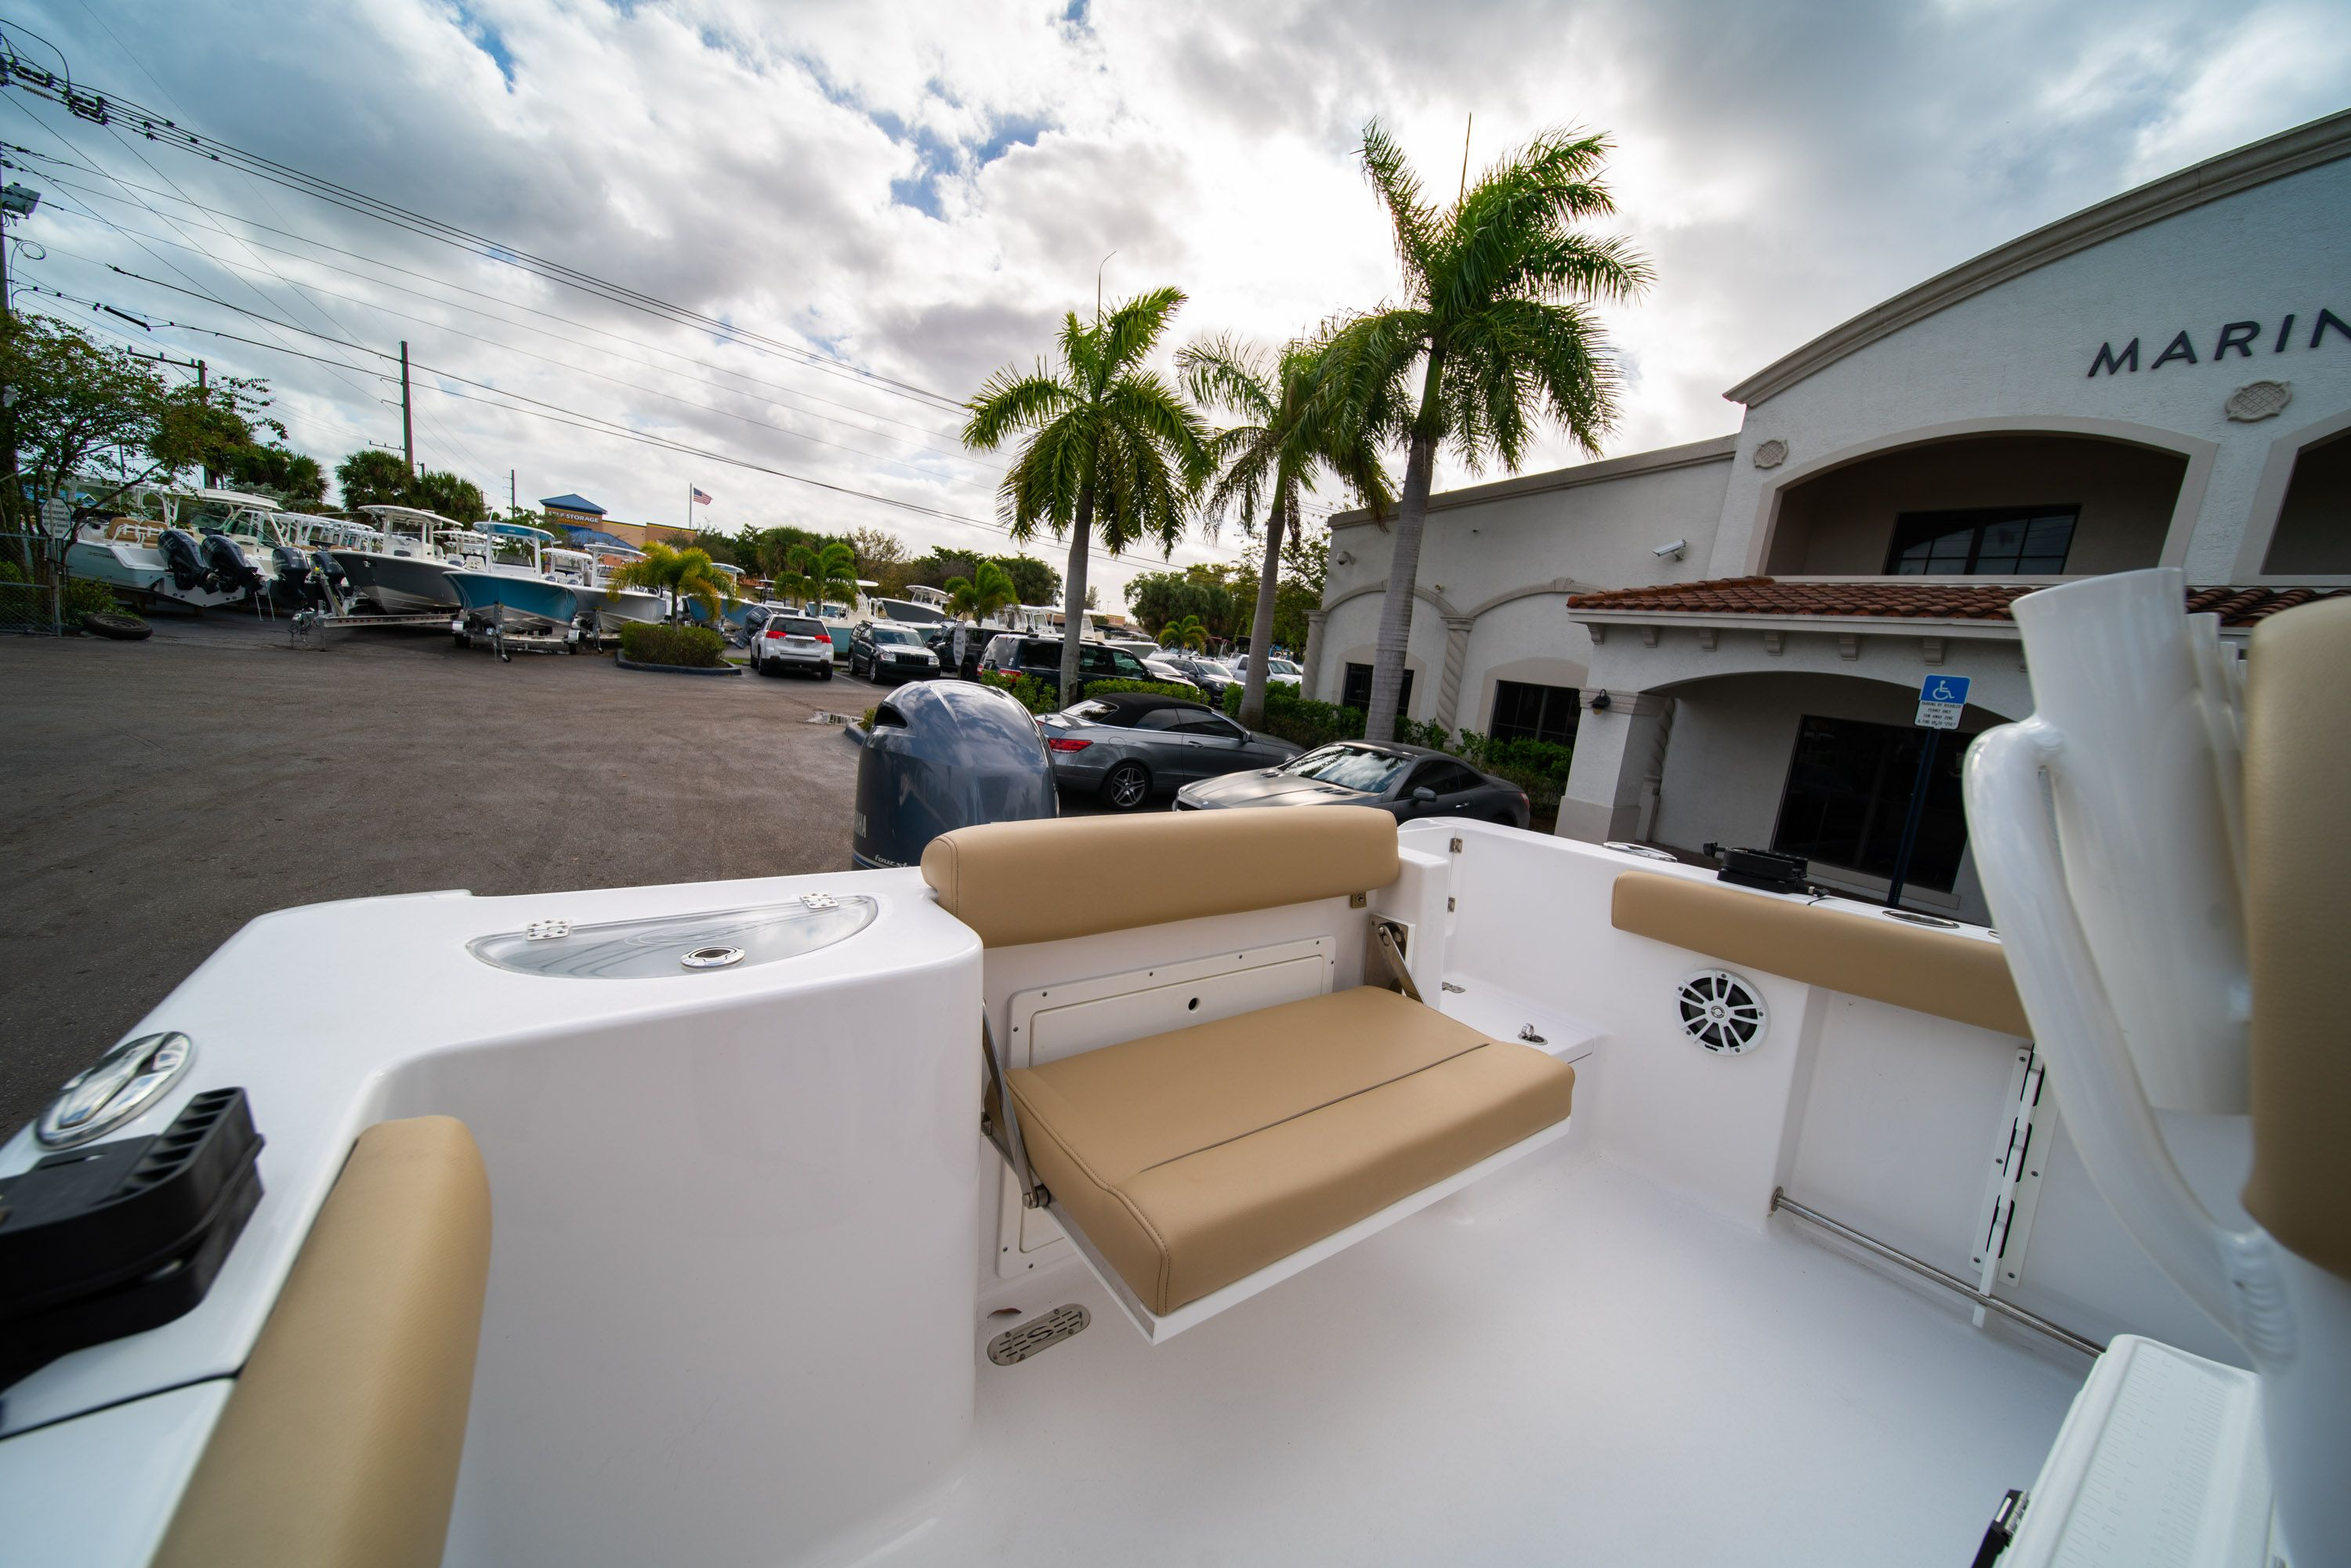 Thumbnail 12 for Used 2018 Sportsman Open 232 Center Console boat for sale in West Palm Beach, FL